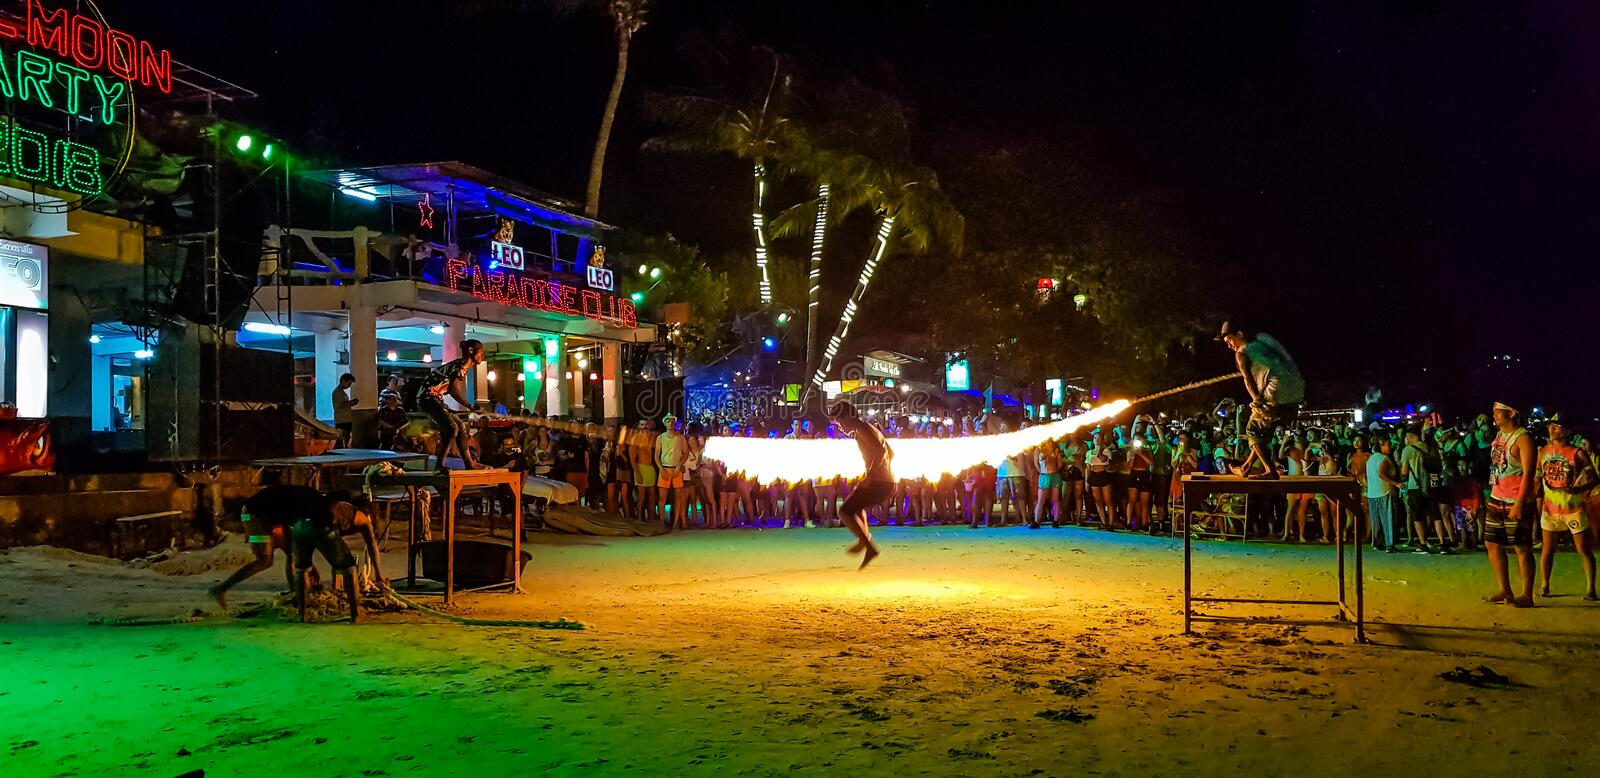 Full moon party royalty free stock photos